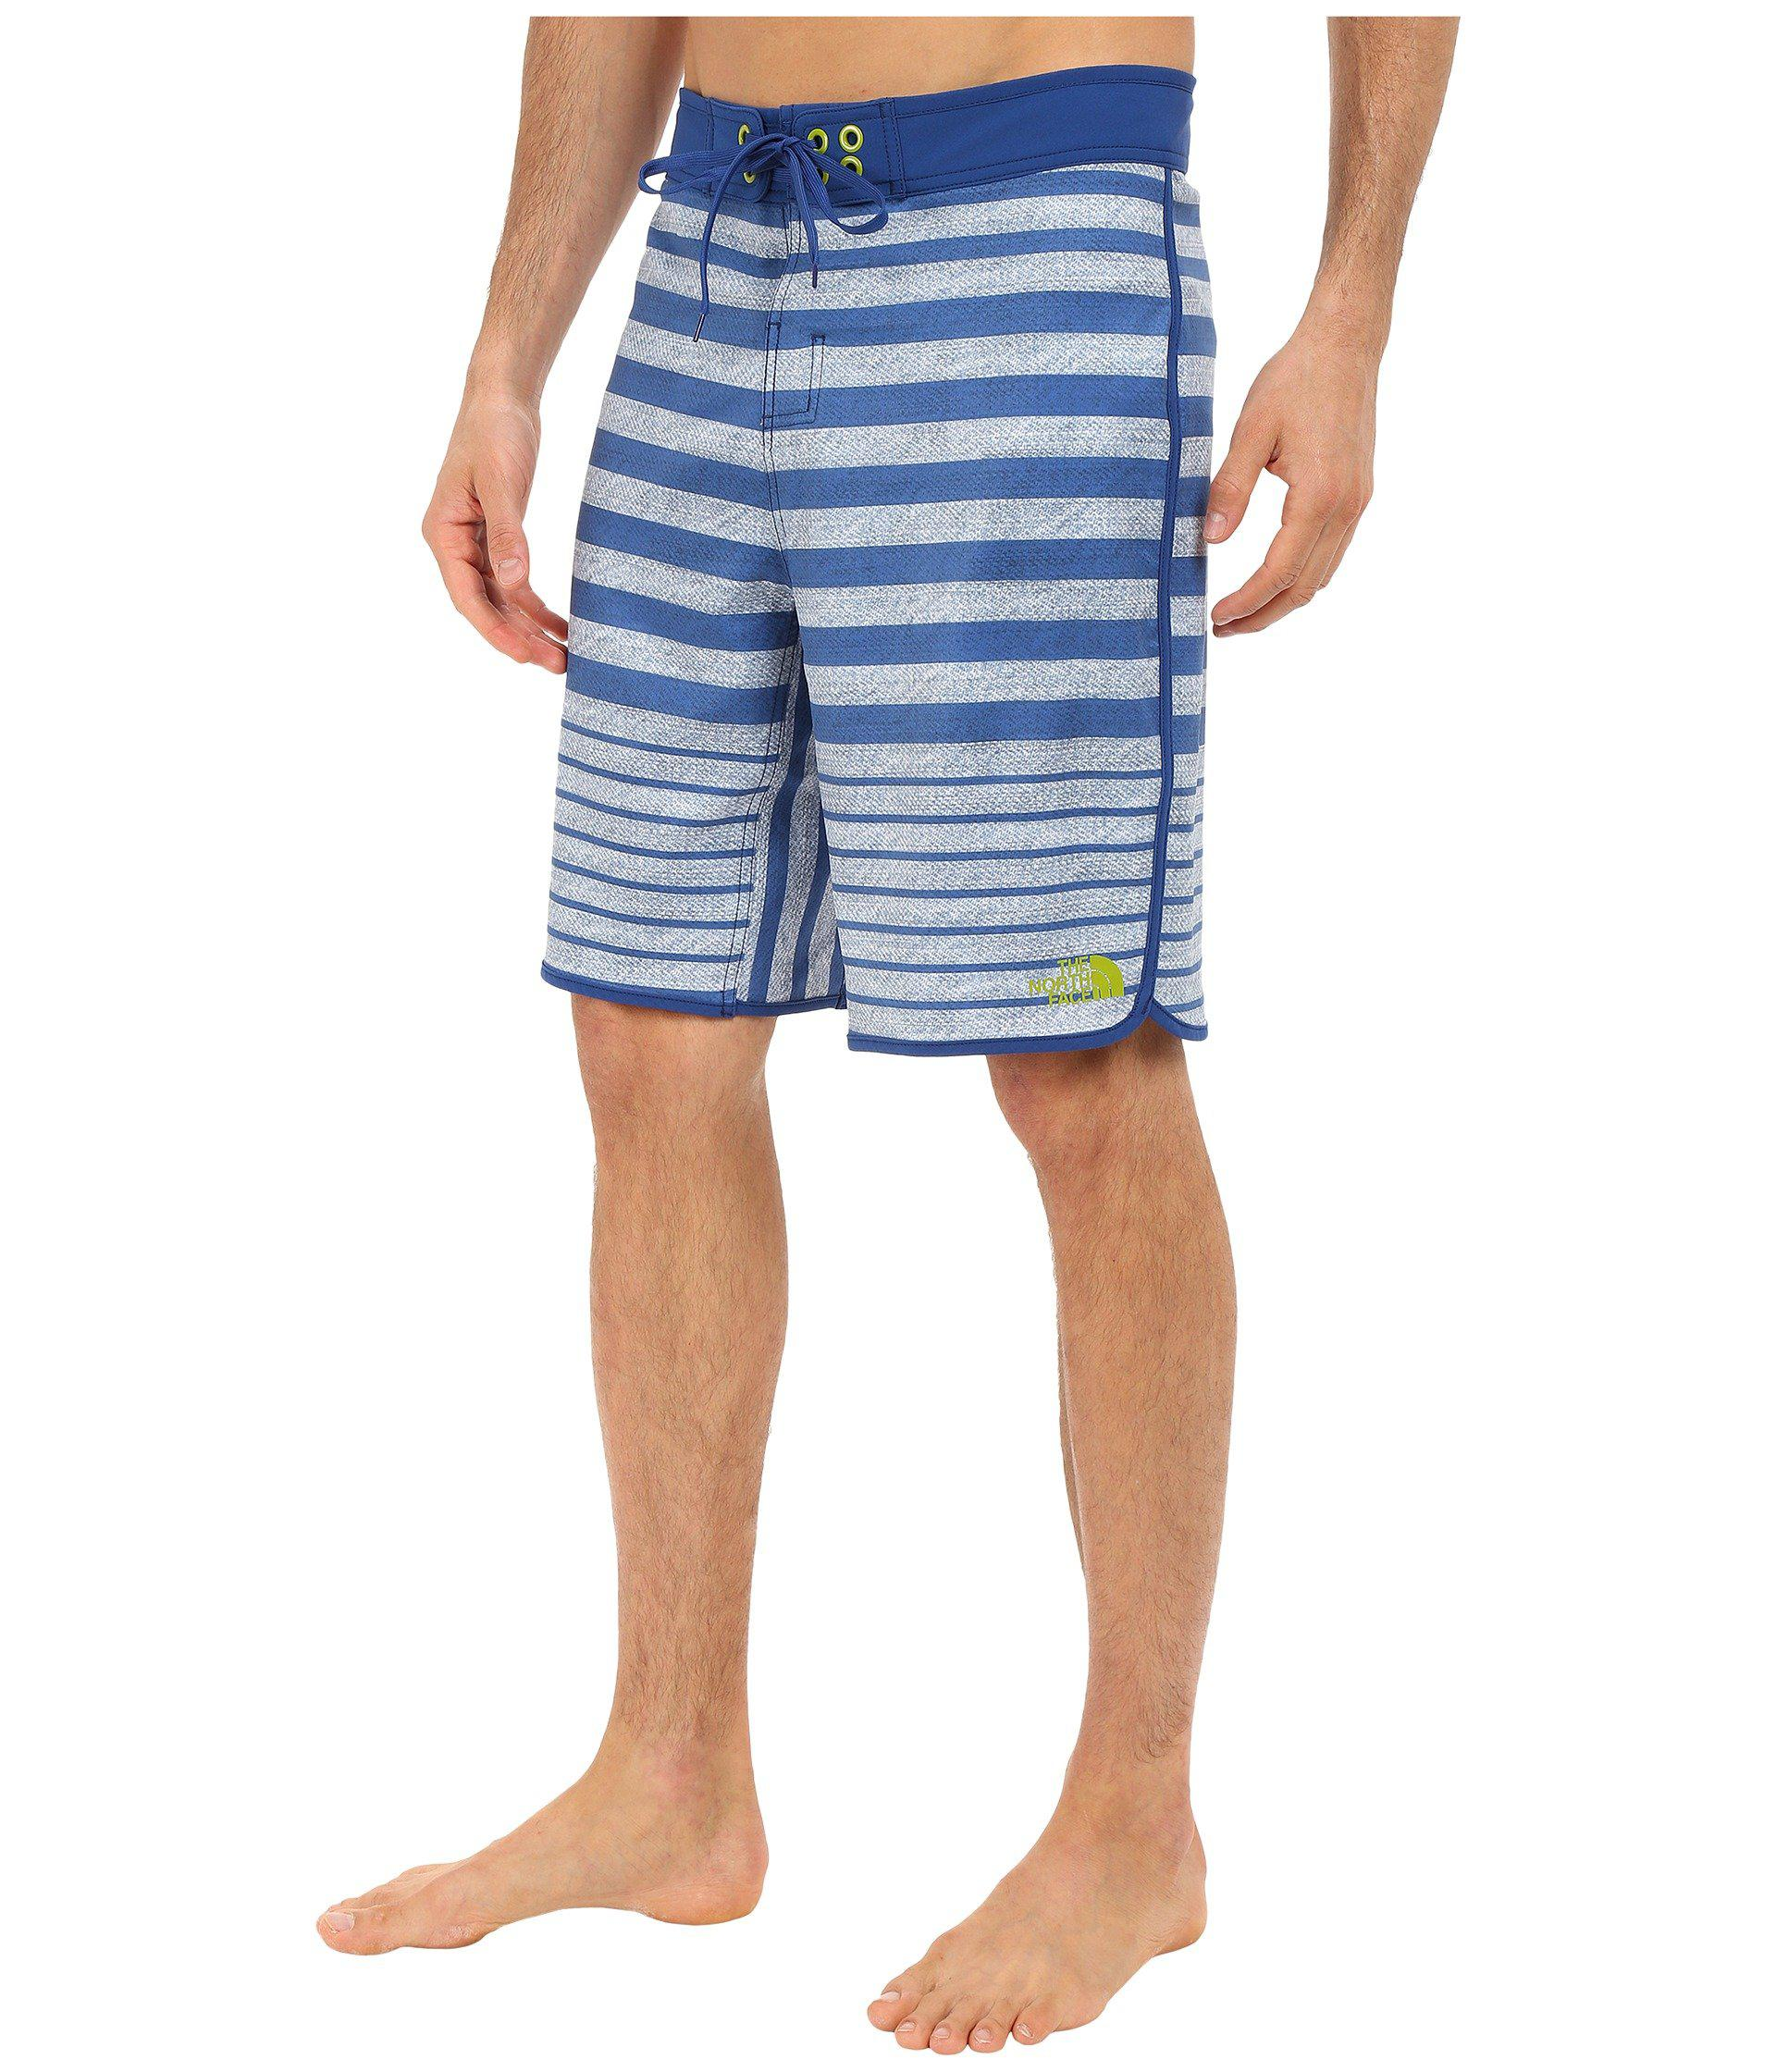 d865eb1a9 Lyst - The North Face Whitecap Boardshorts in Blue for Men - Save 25%